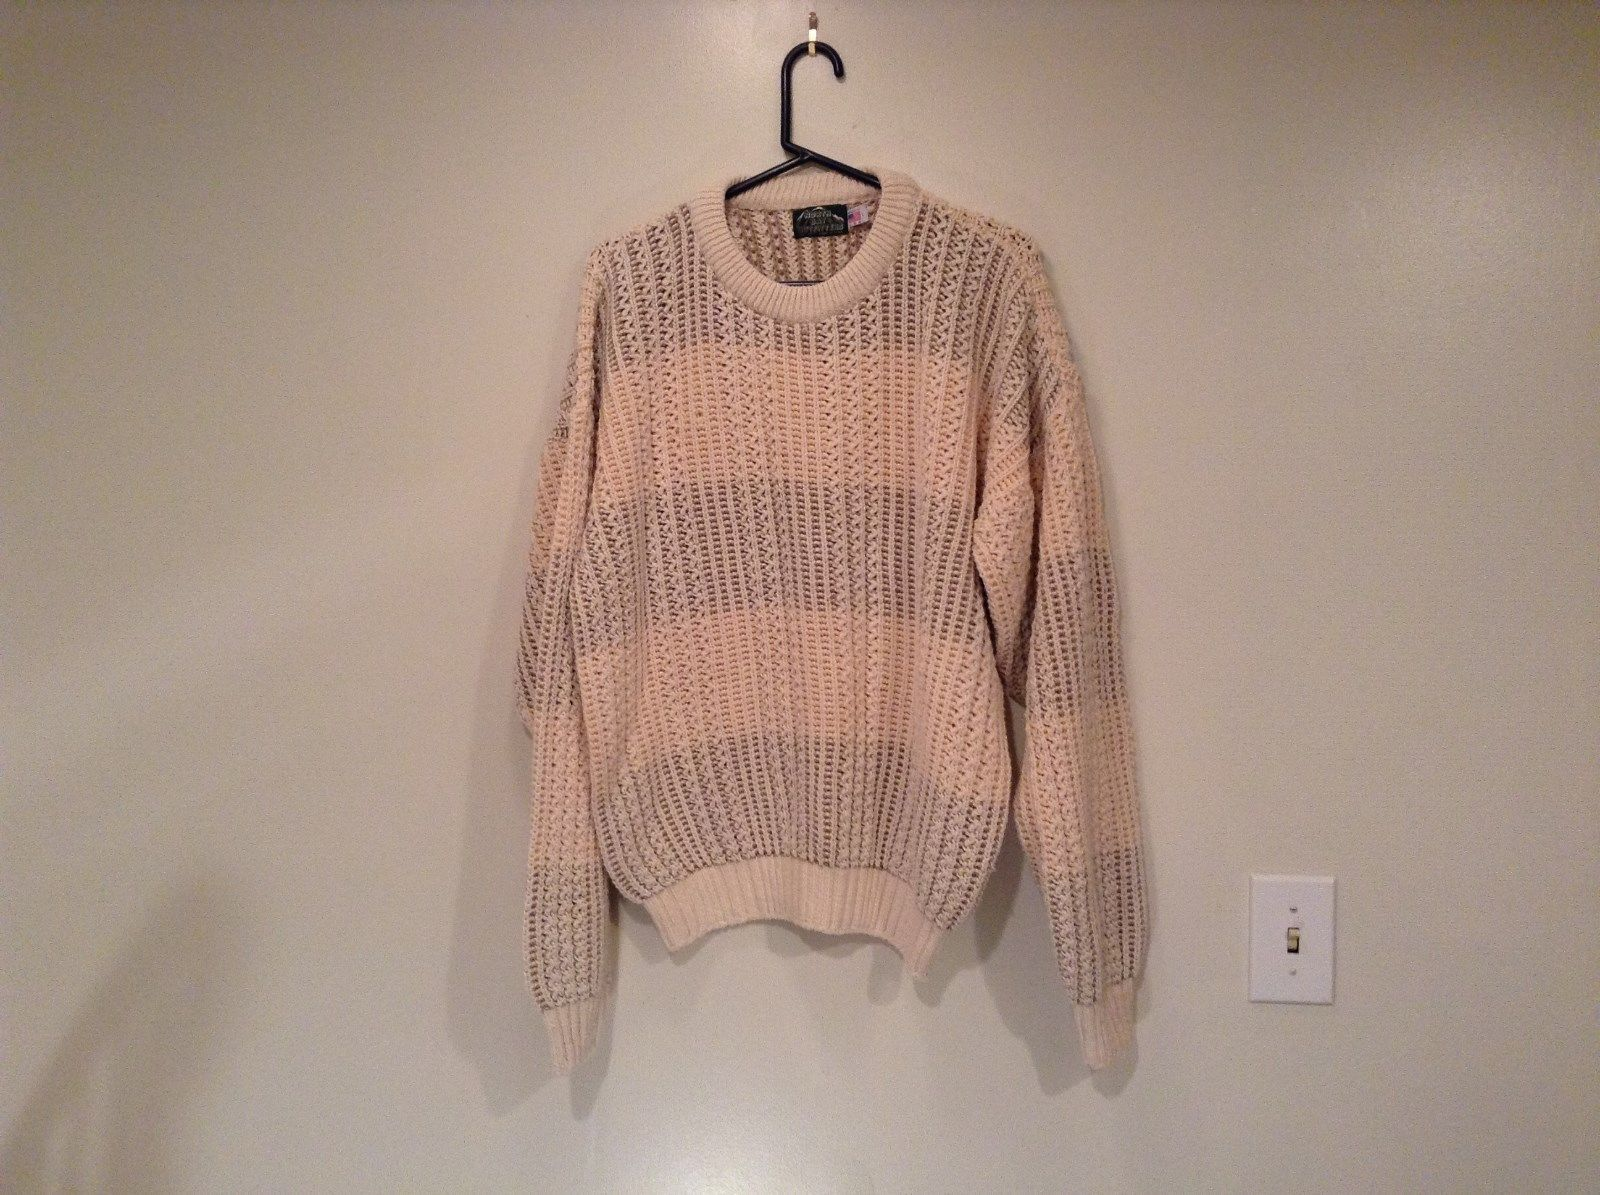 North Bay Outfitters 100 Percent Cotton Long Sleeve Knitted Sweater Size L